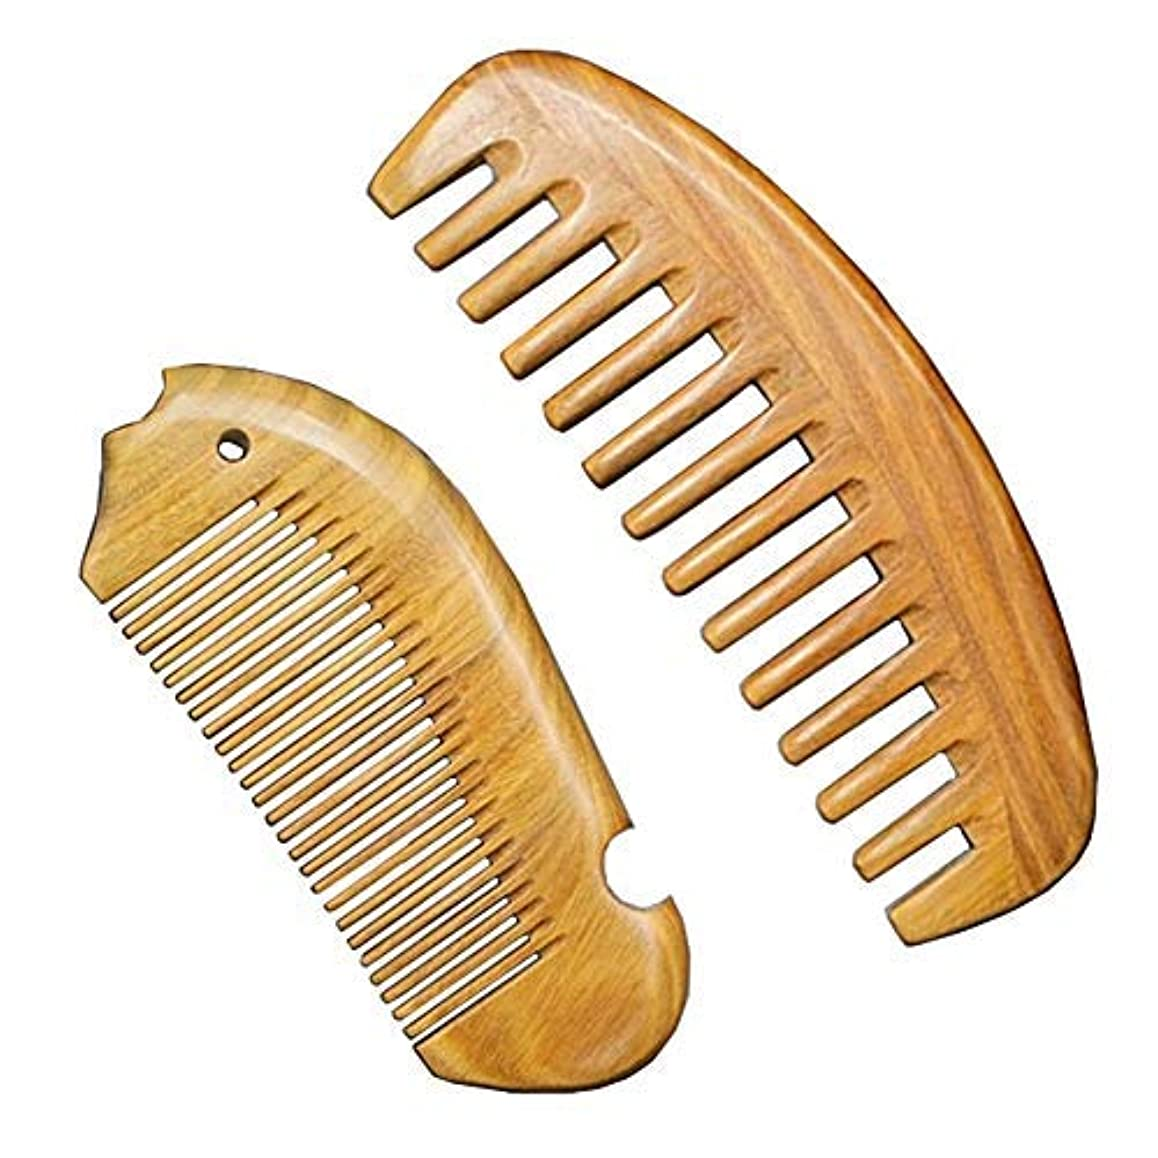 コメンテーター今まで絞るSandalwood Hair Combs Set - Anti-Static Sandalwood Scent Natural Hair Detangler Wooden Comb (Wide Tooth & Fine Tooth Hair Combs) [並行輸入品]